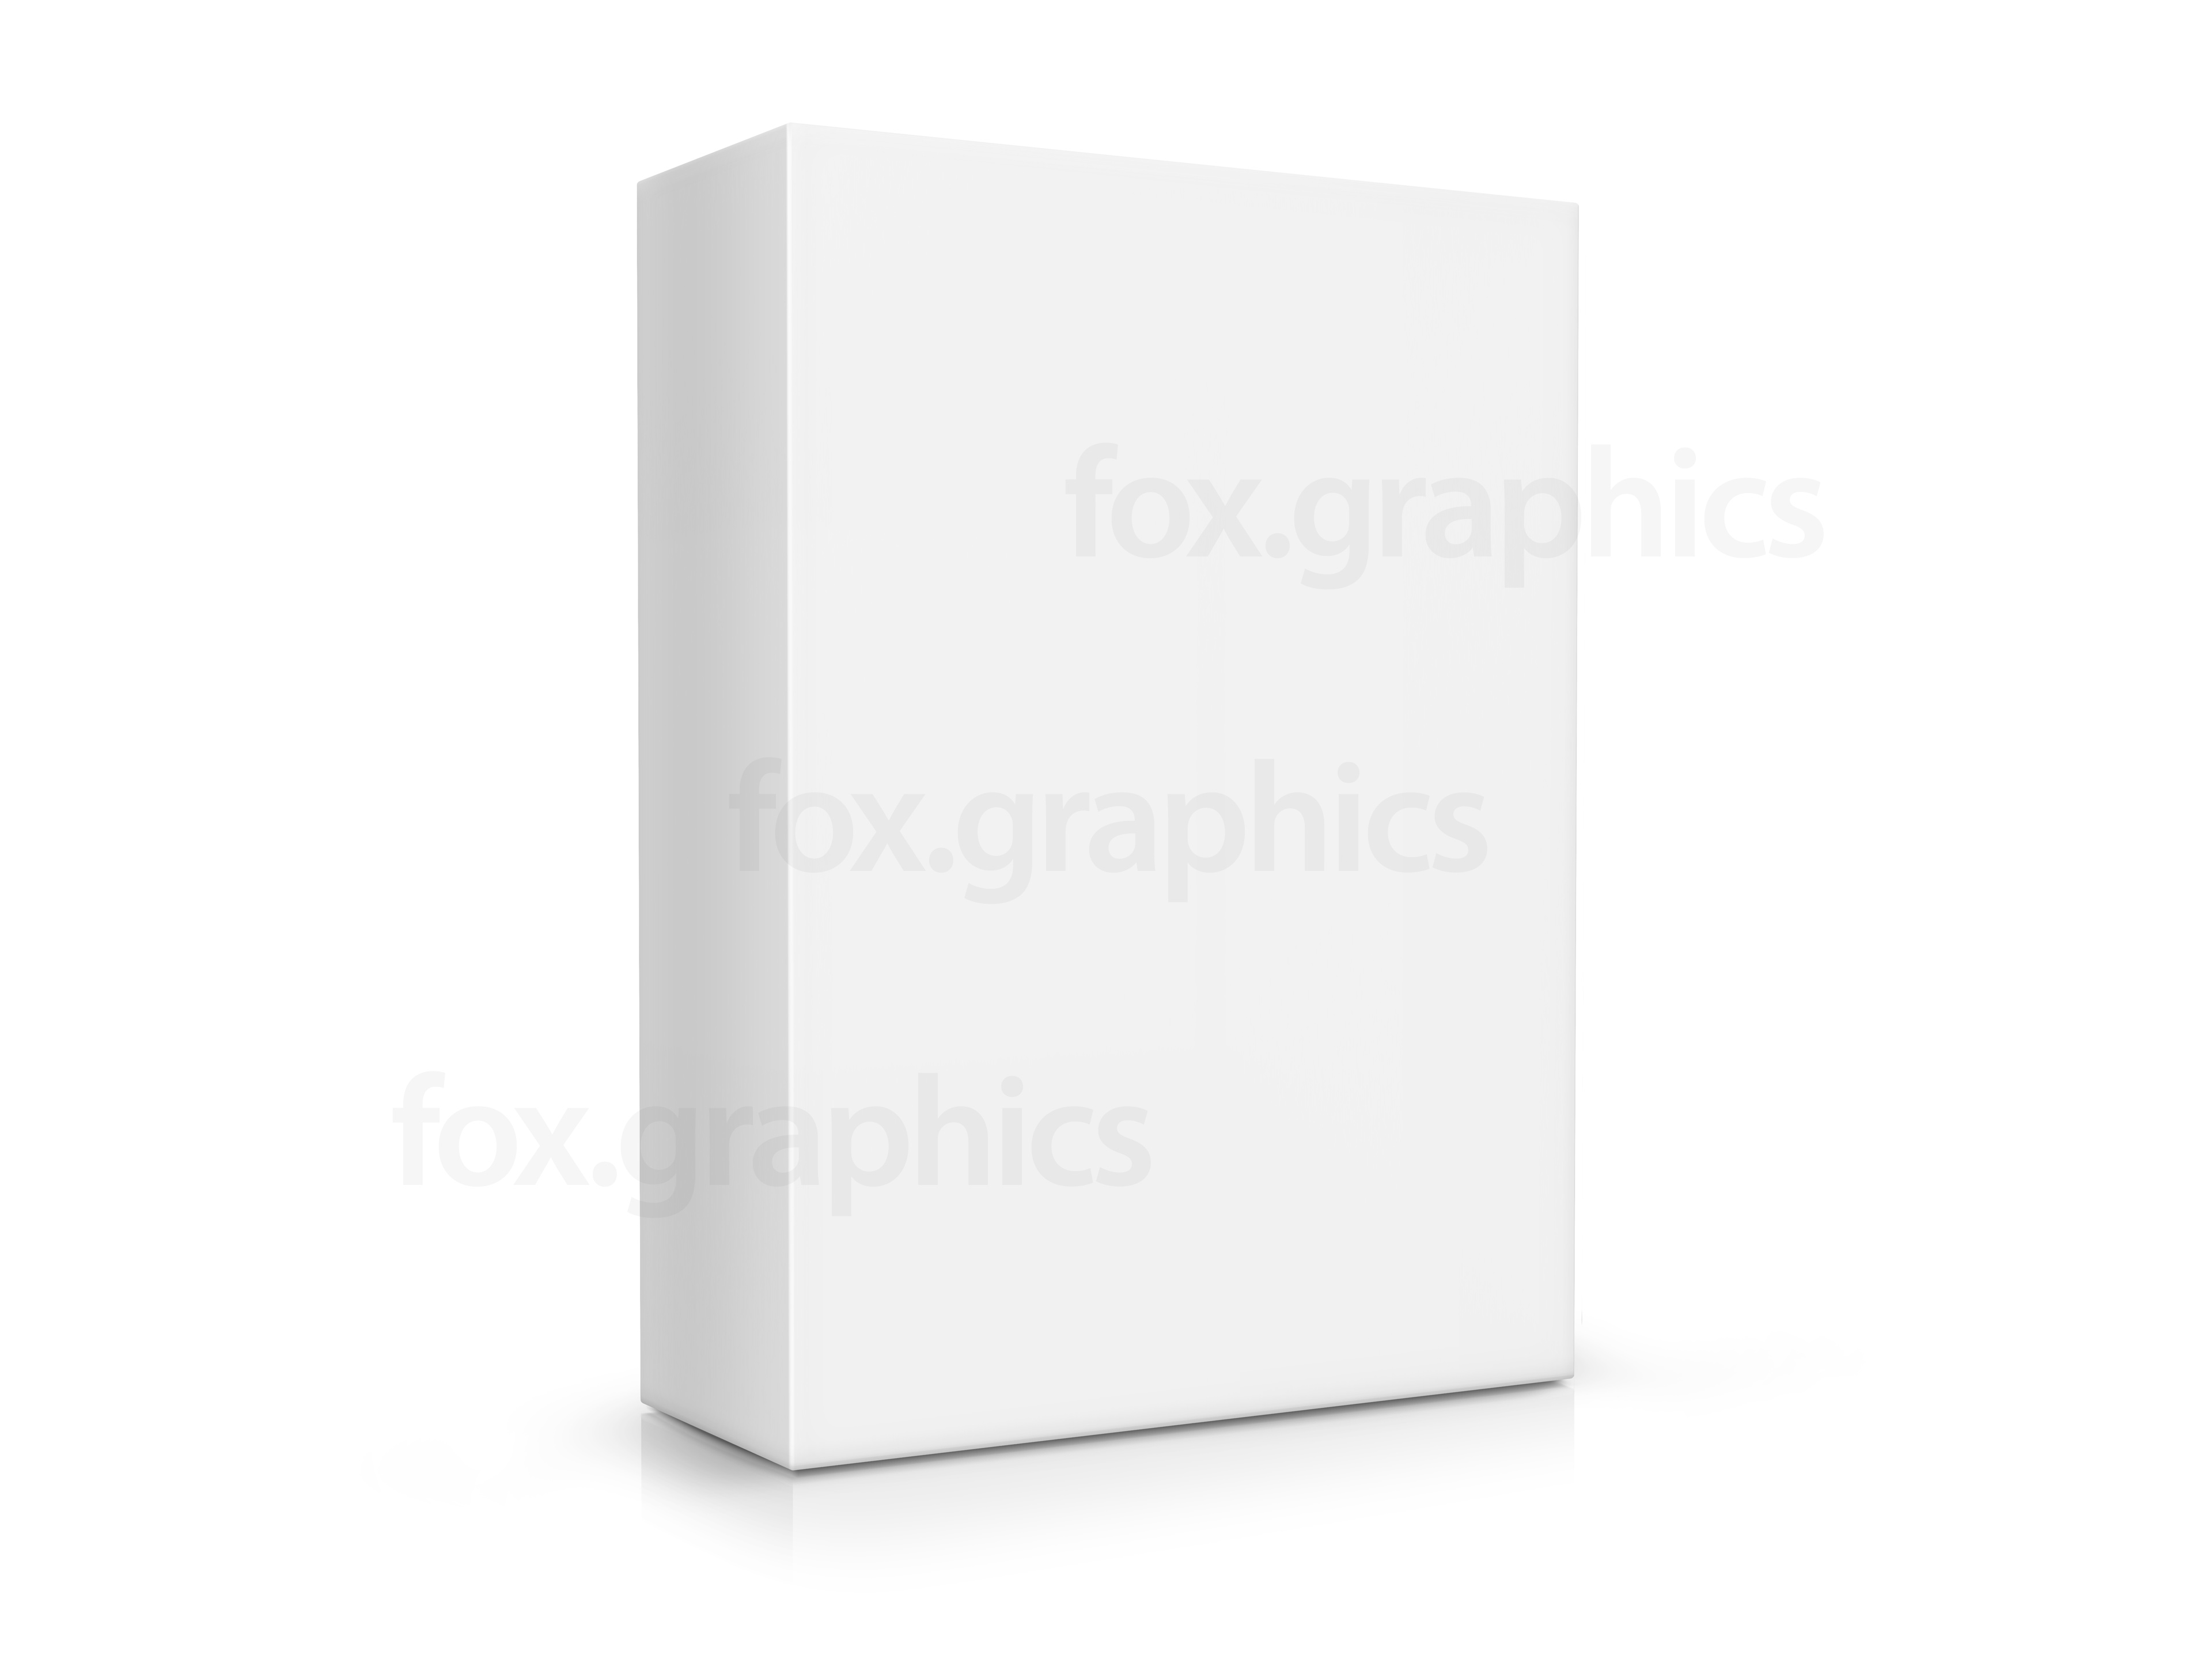 9 Blank Box Template Psd Images Blank Box Packaging Design Blank